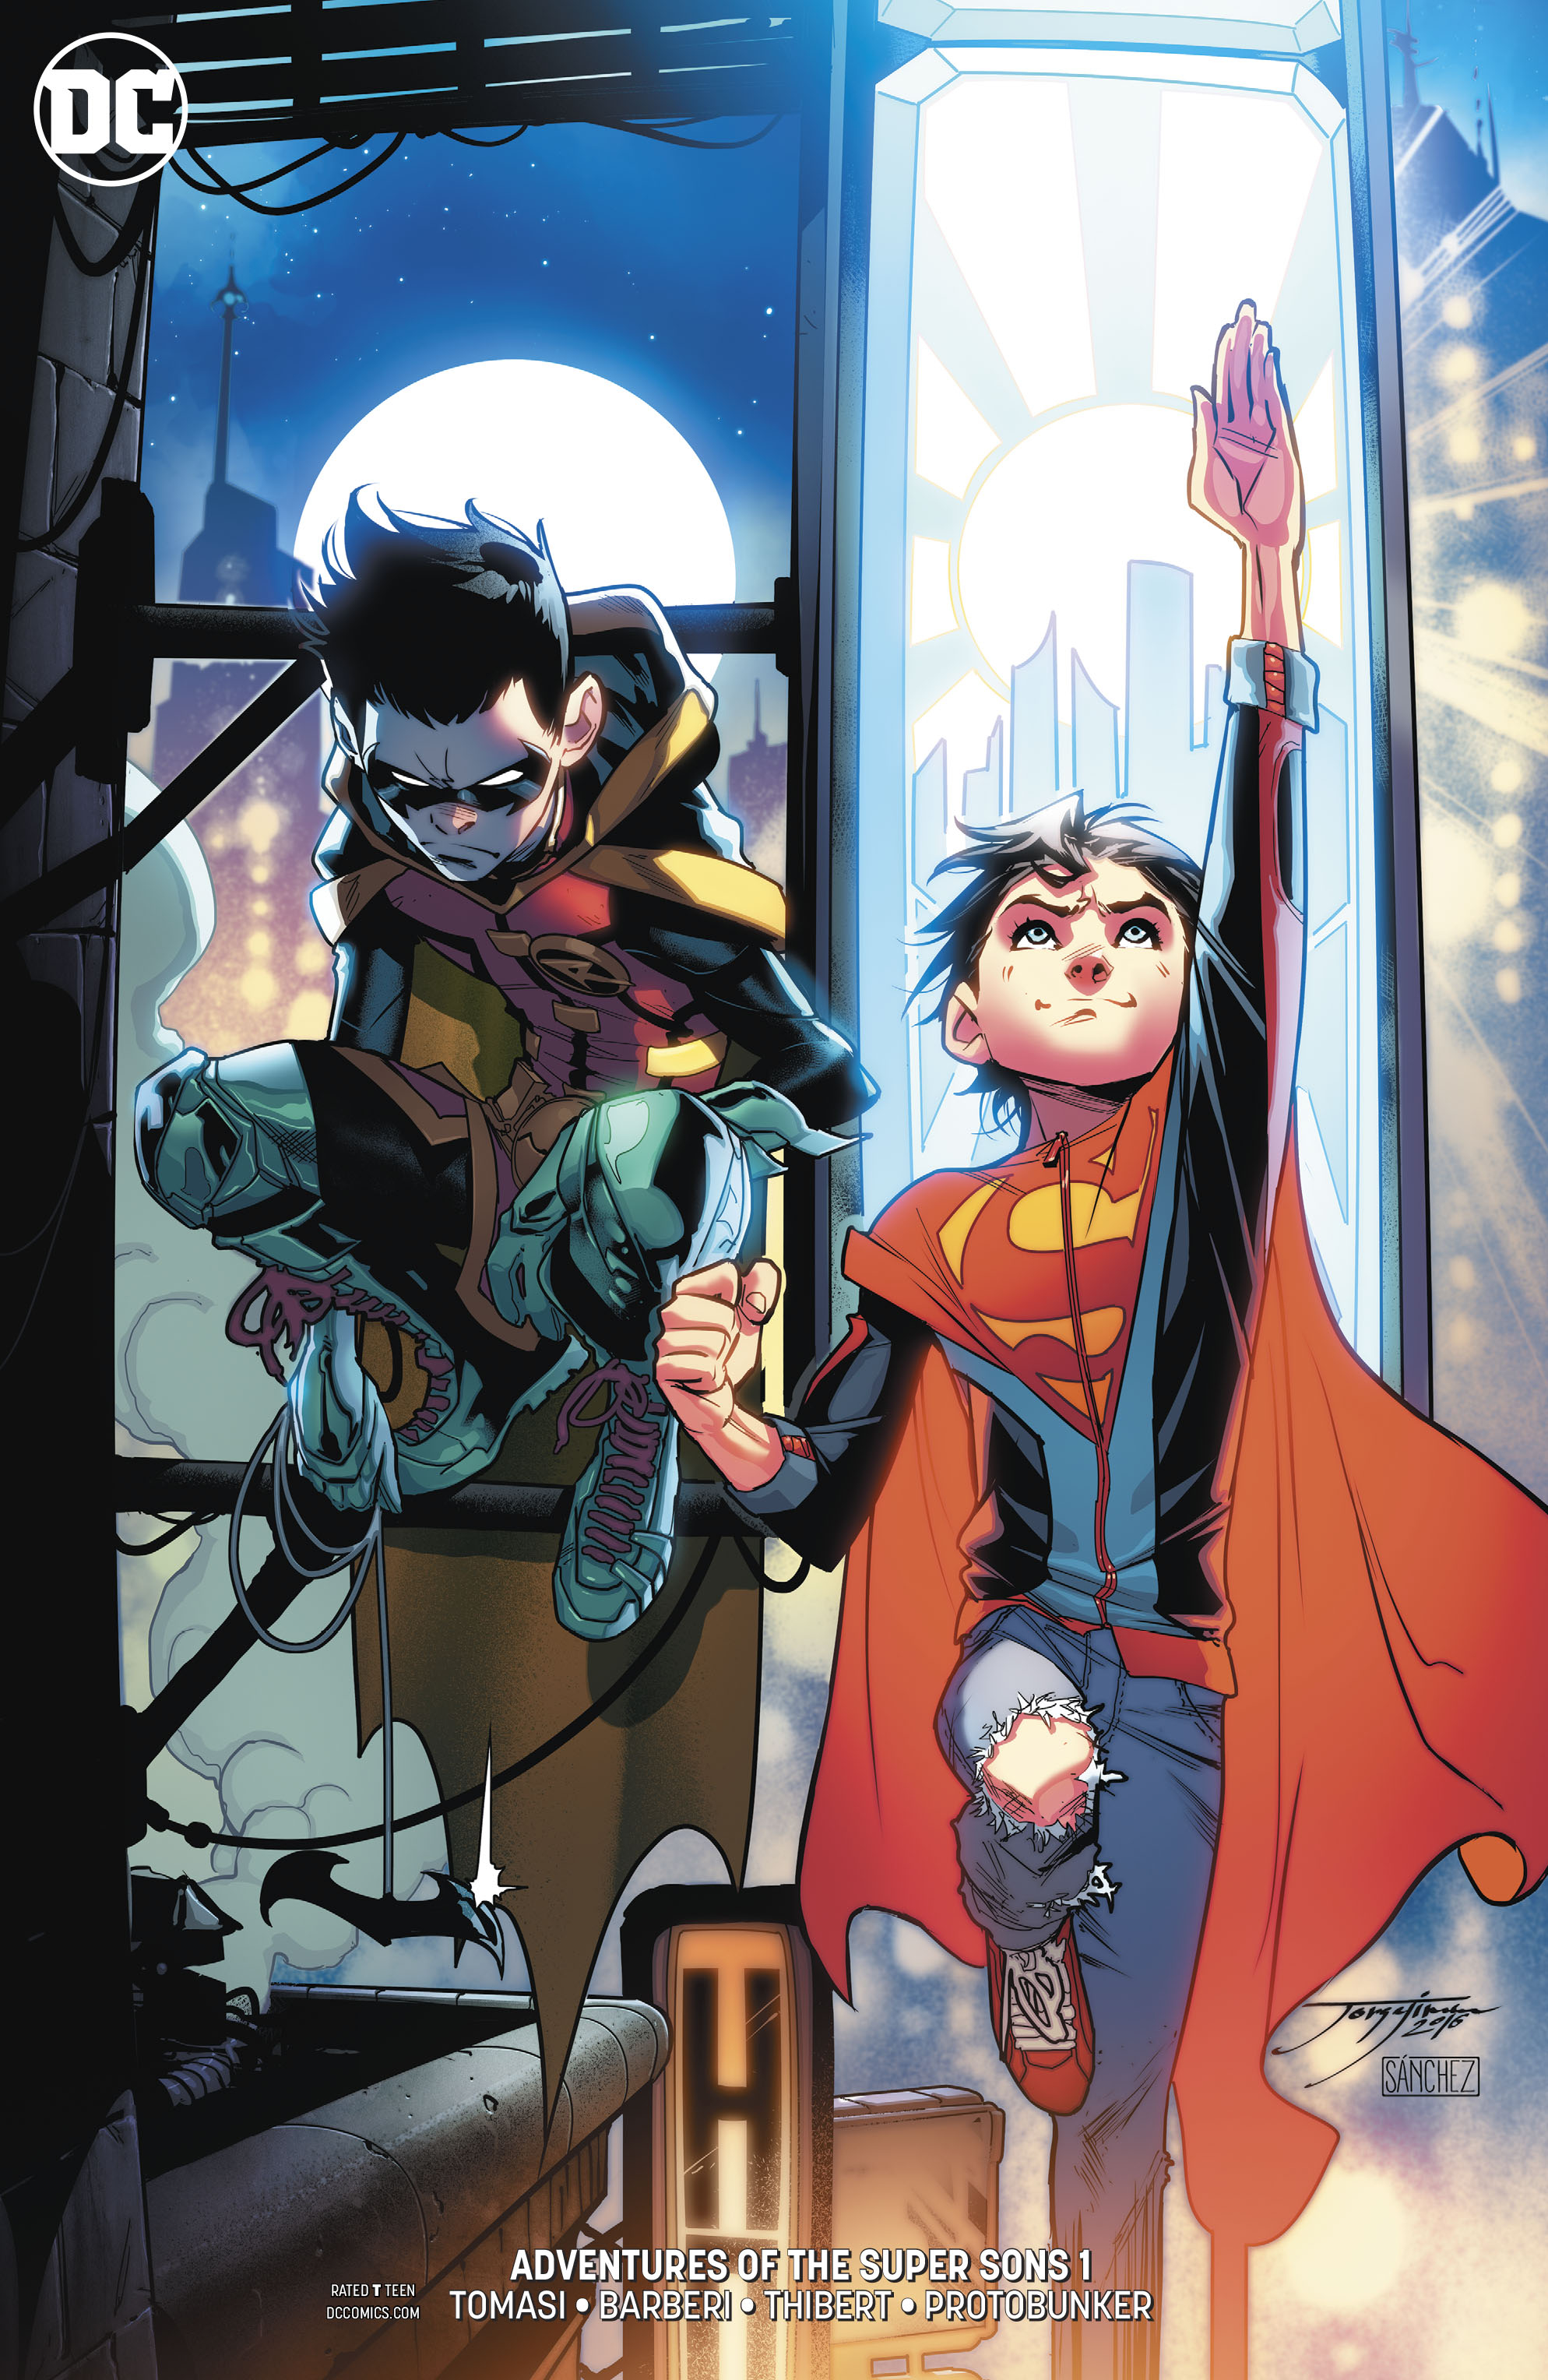 Adventures of the Super Sons #1